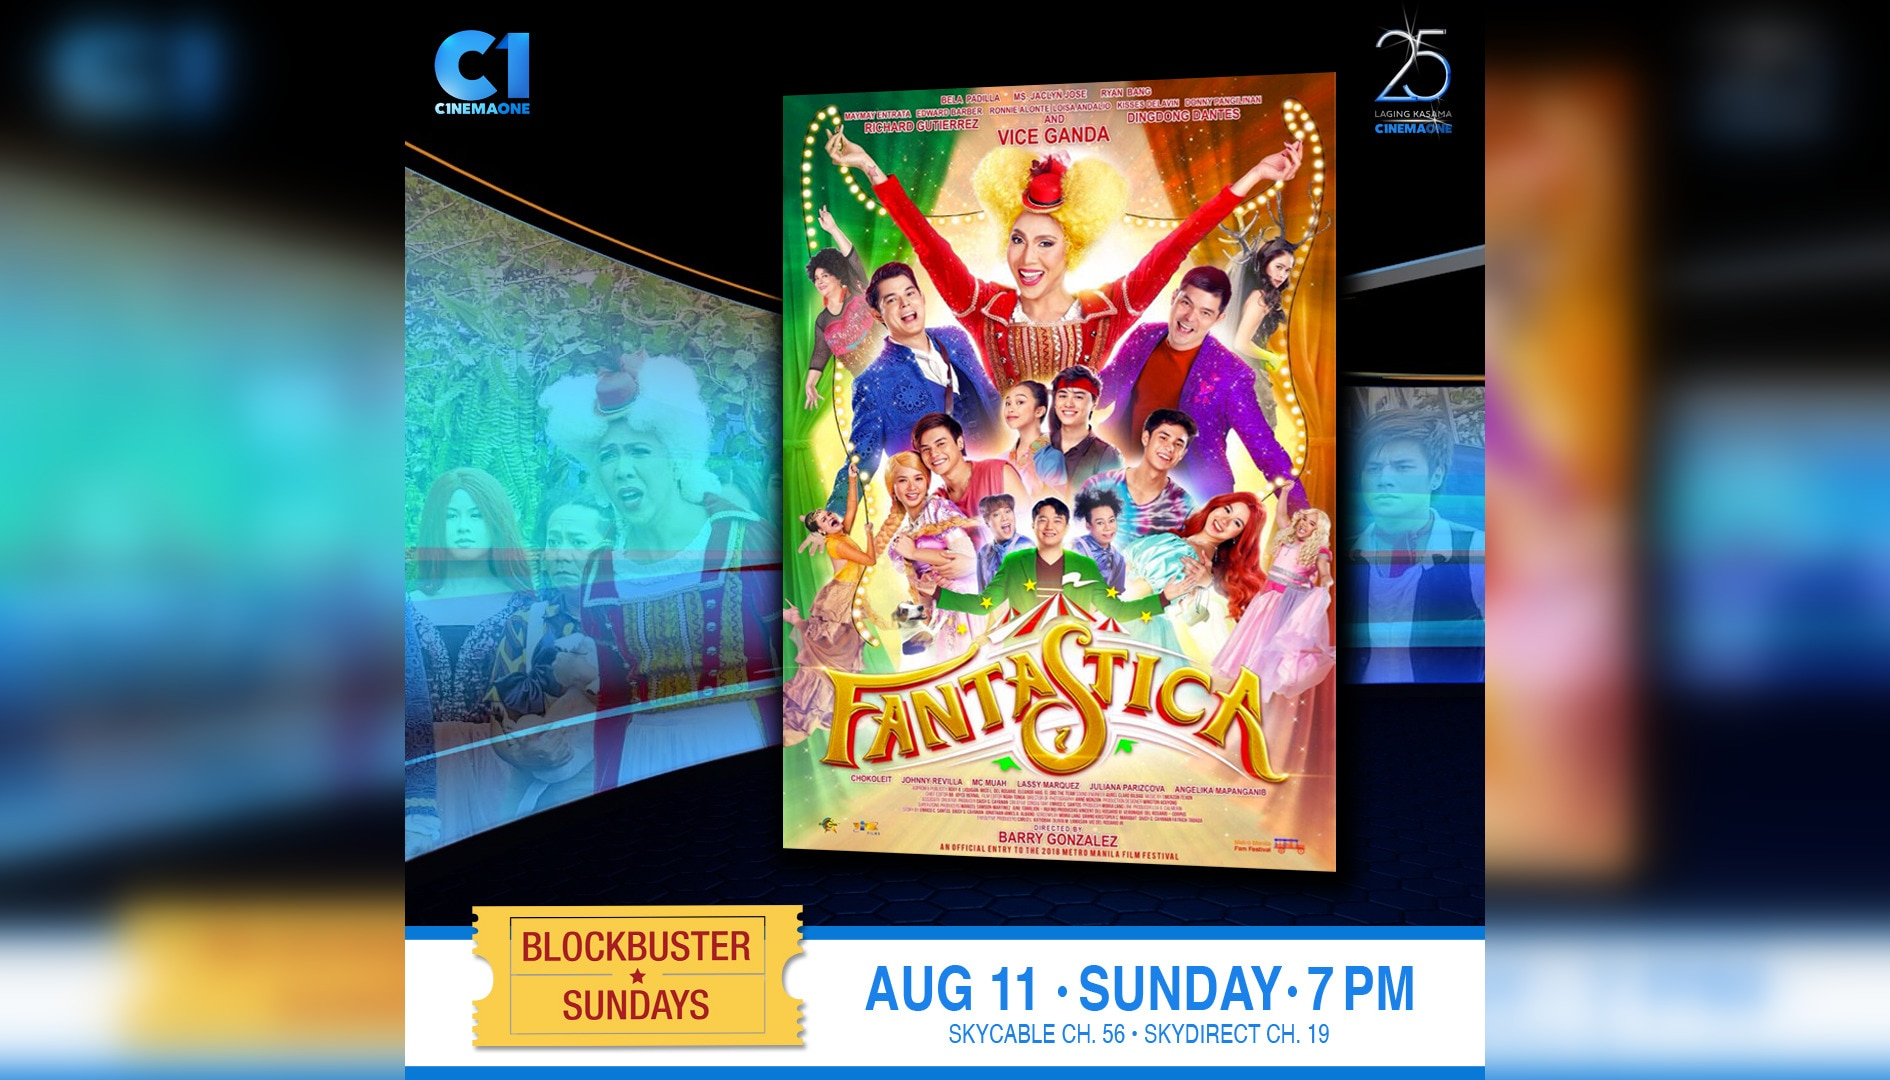 """Fantastica: The Prince, The Princess, and The Perya"" premieres on Cinema One this Sunday"